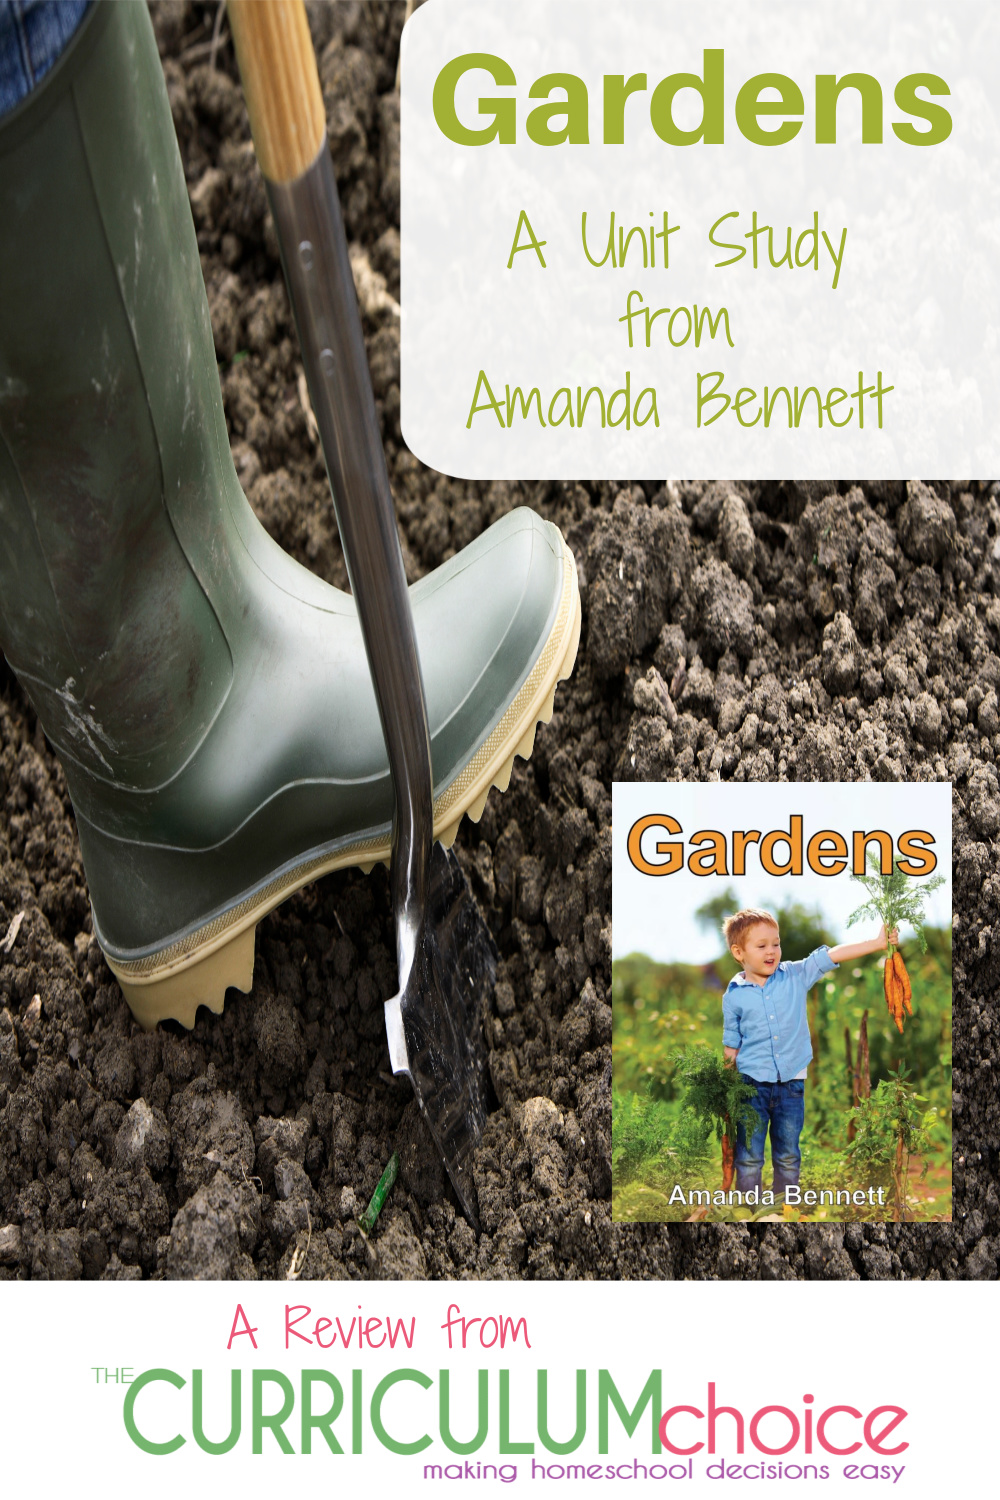 A review of Amanda Bennett's Gardens unit study. How to use Gardens to compliment your summer gardening project in your homeschool.